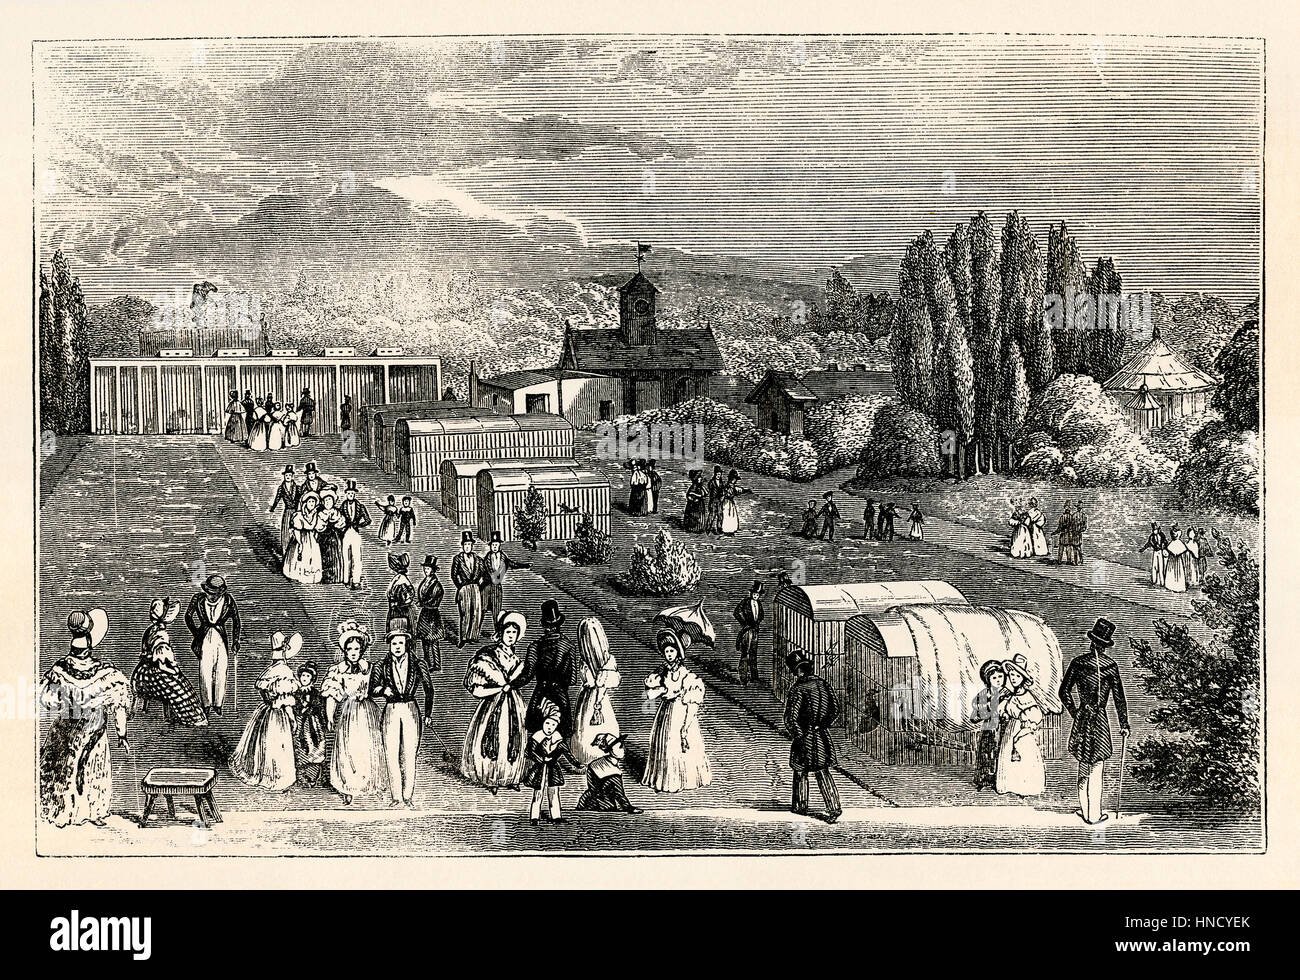 The Zoological Gardens, Regents Park, London – an old engraving c. 1830 Stock Photo